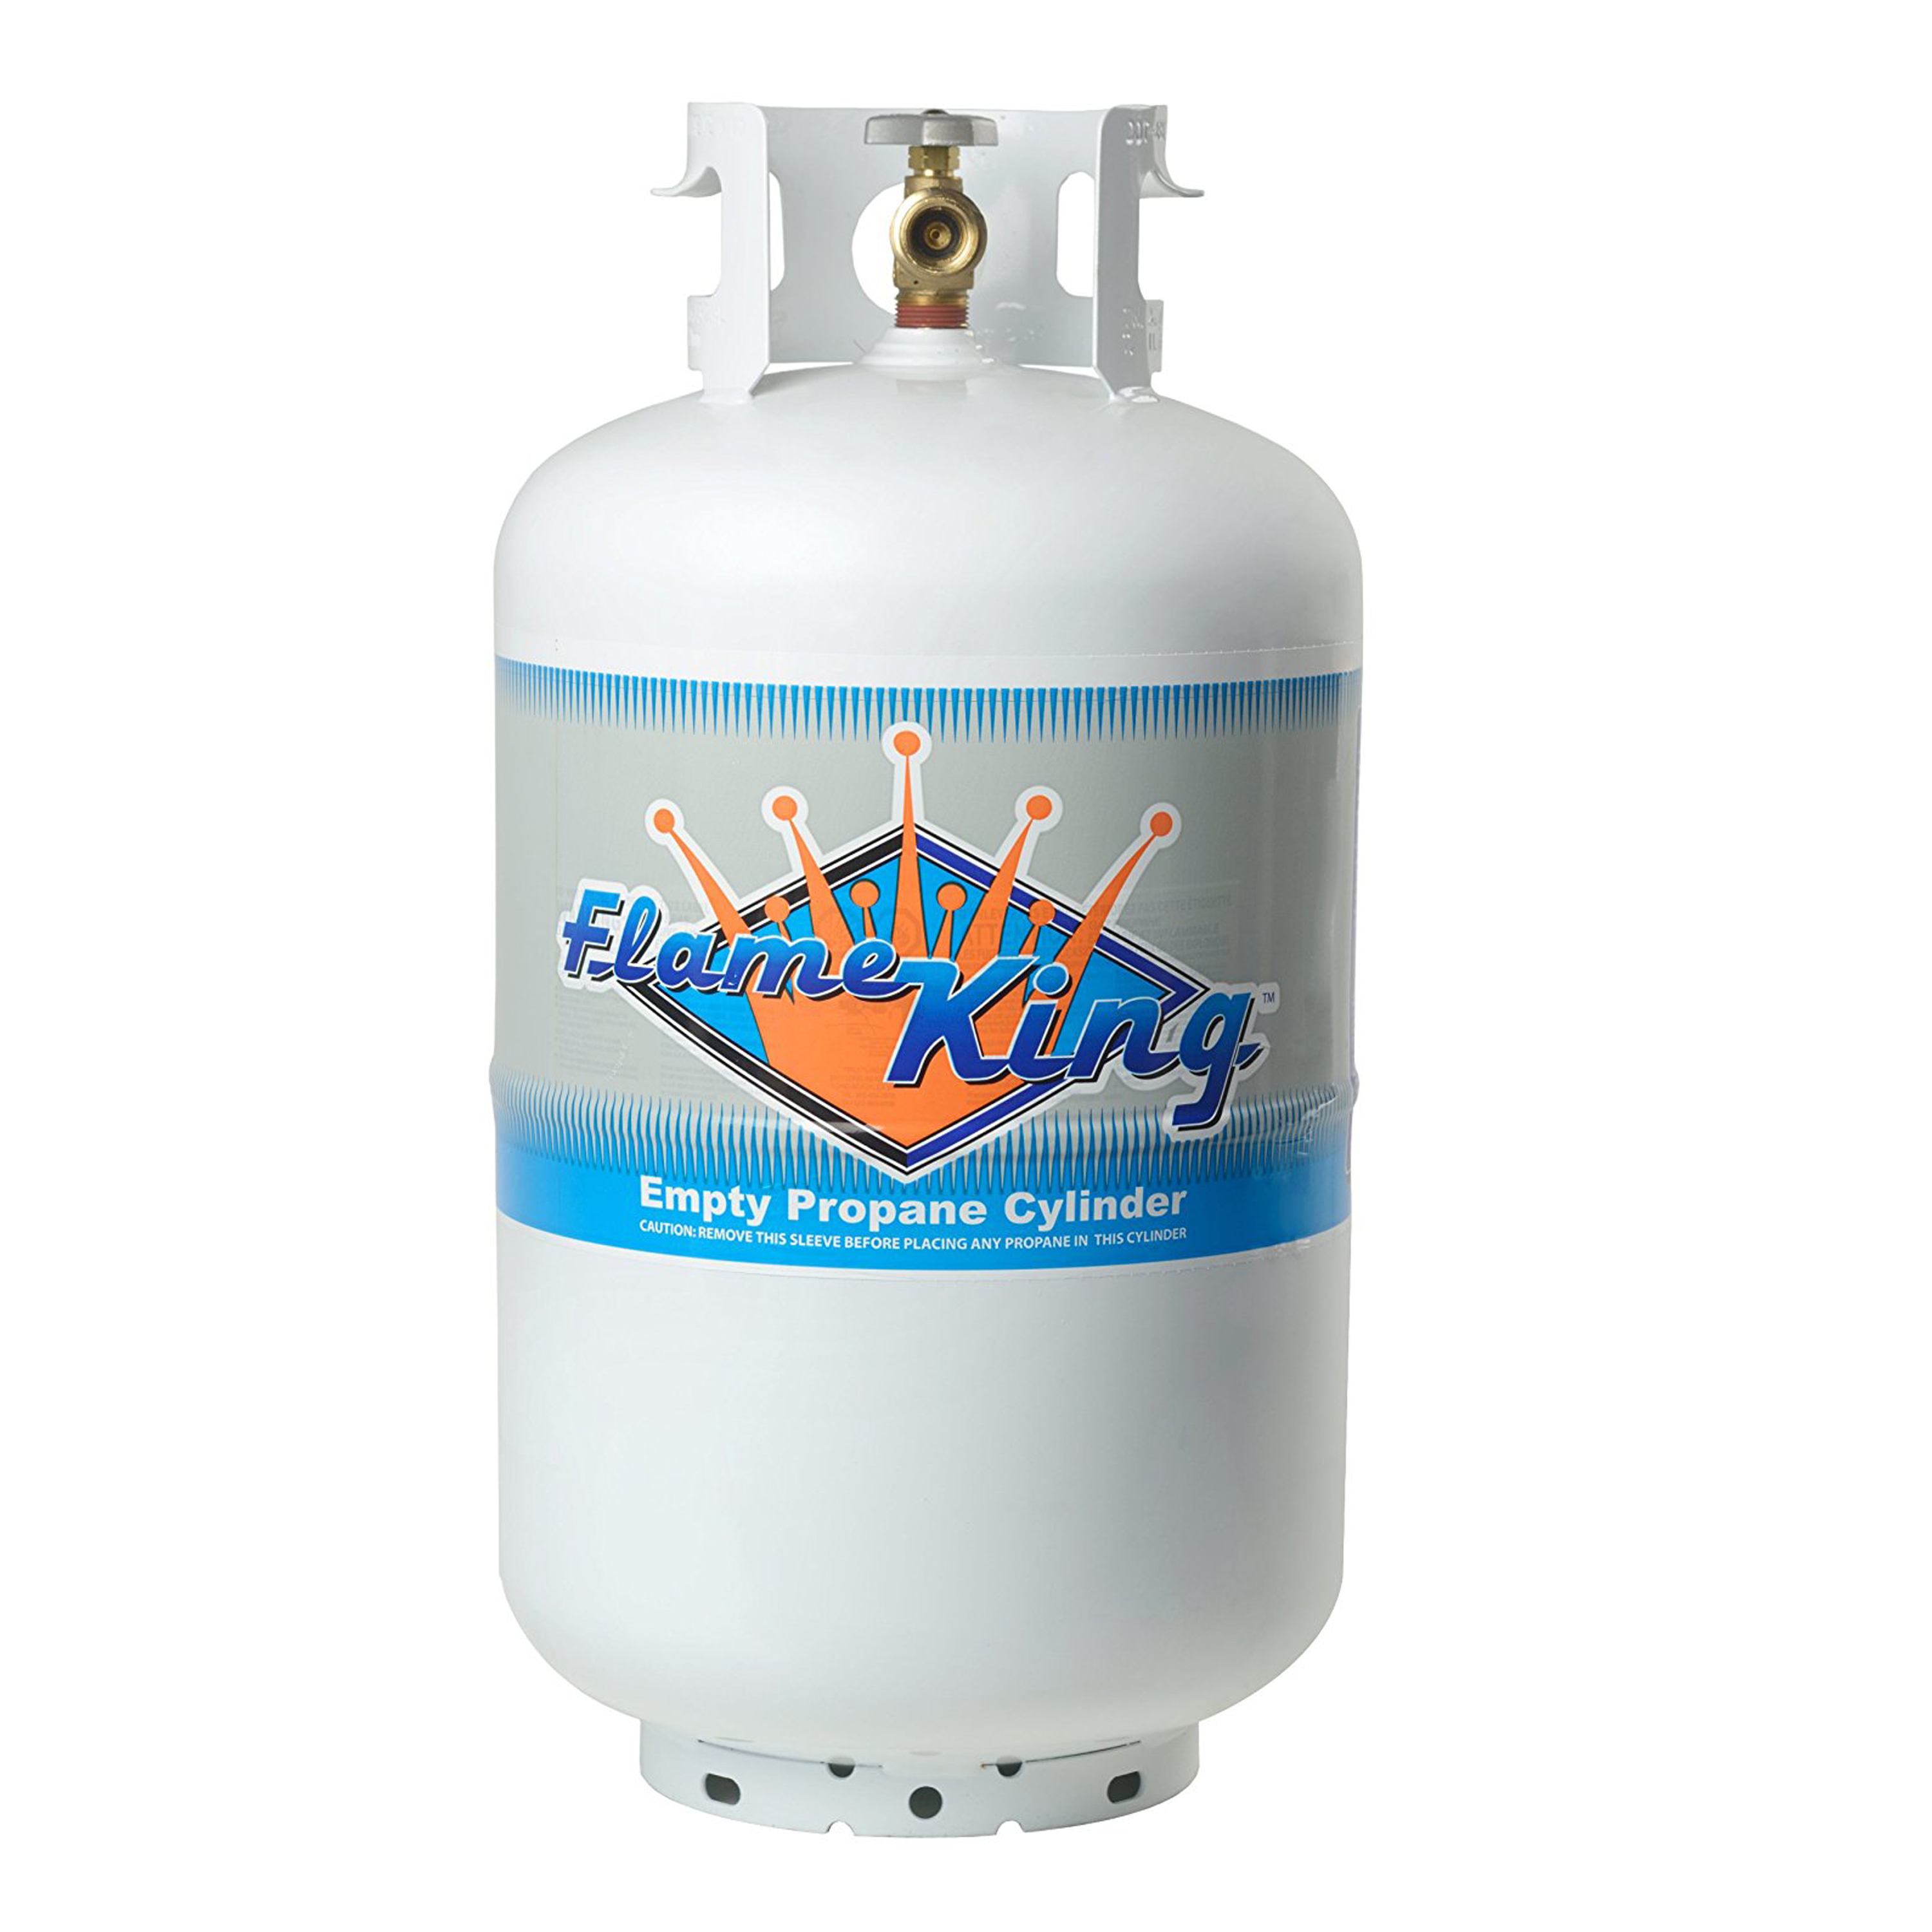 30 lb. Propane Cylinder with Type 1 Overfill Protection Device Valve (Ships Empty)